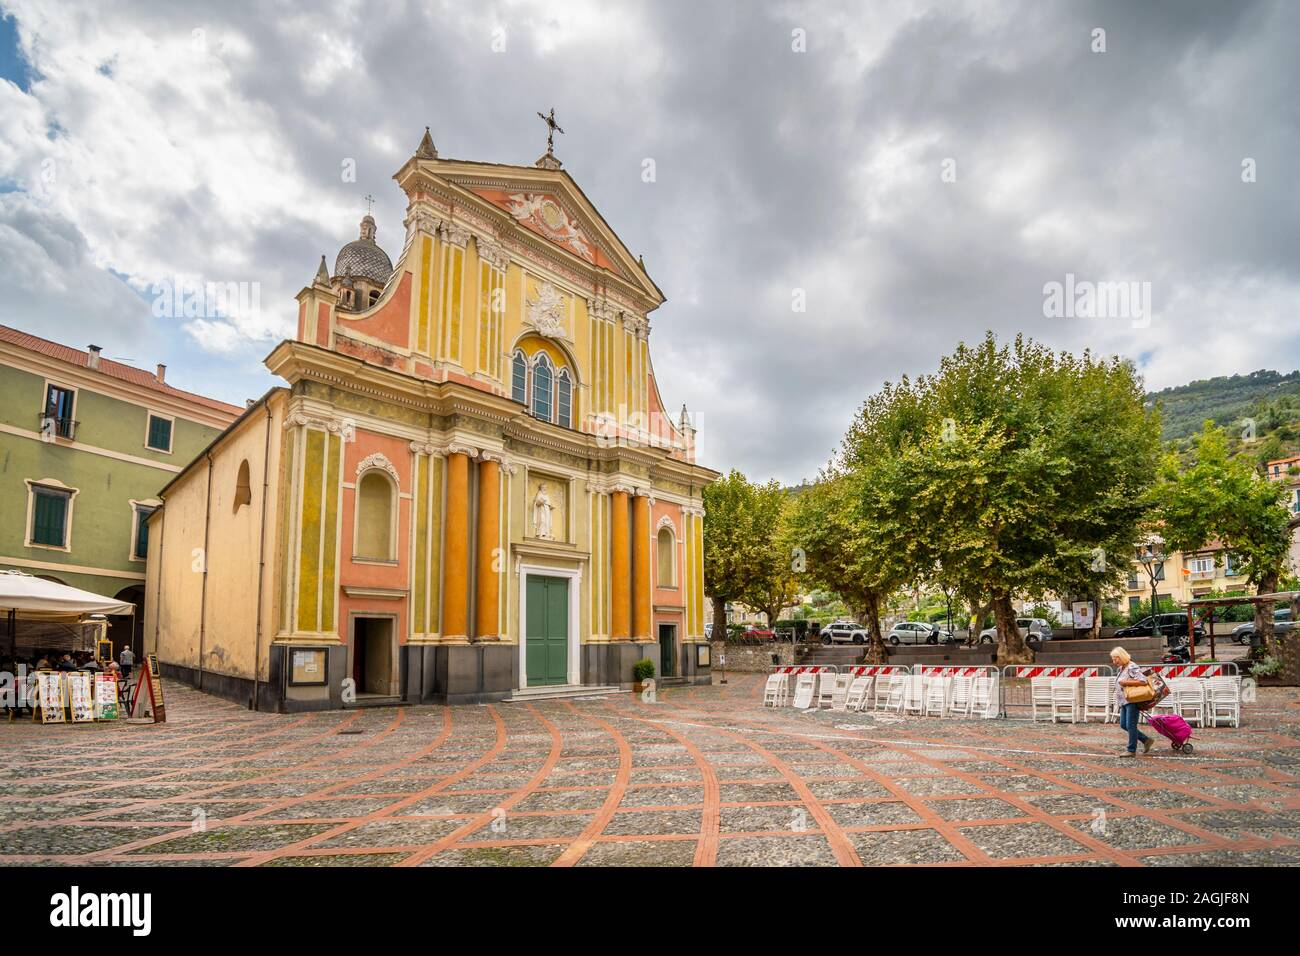 A tourist passes by the Sant Antonio Abate Church in a small piazza on an overcast day in Dolceacqua, Italy Stock Photo